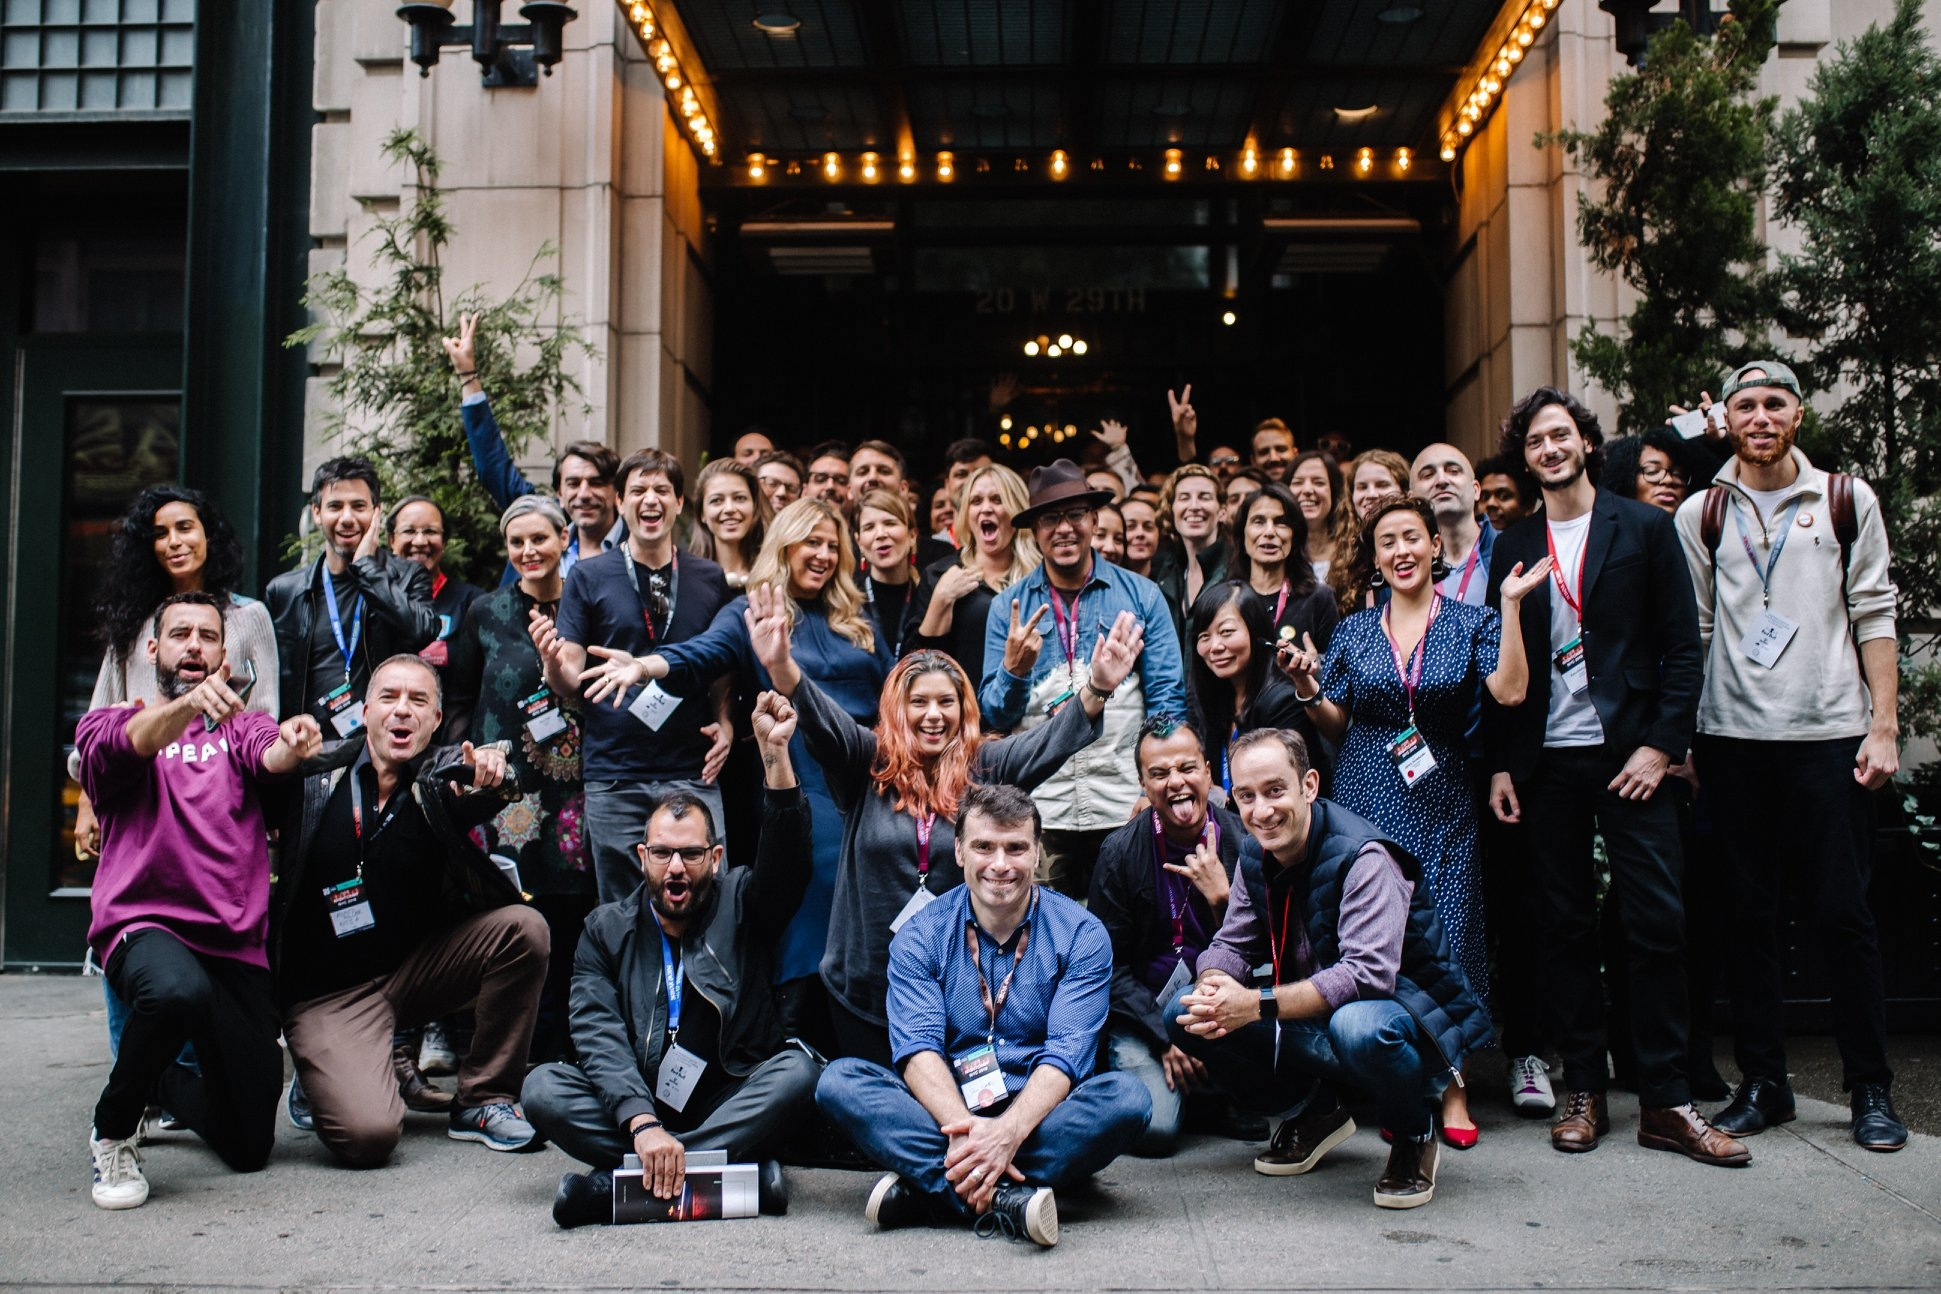 Photo taken outside of the Ace Hotel on September 28, 2018, during NightCamp: A one-day event to launch the Creative Footprint report for the city, and rethink the way NYC plans and uses its spaces after dark.